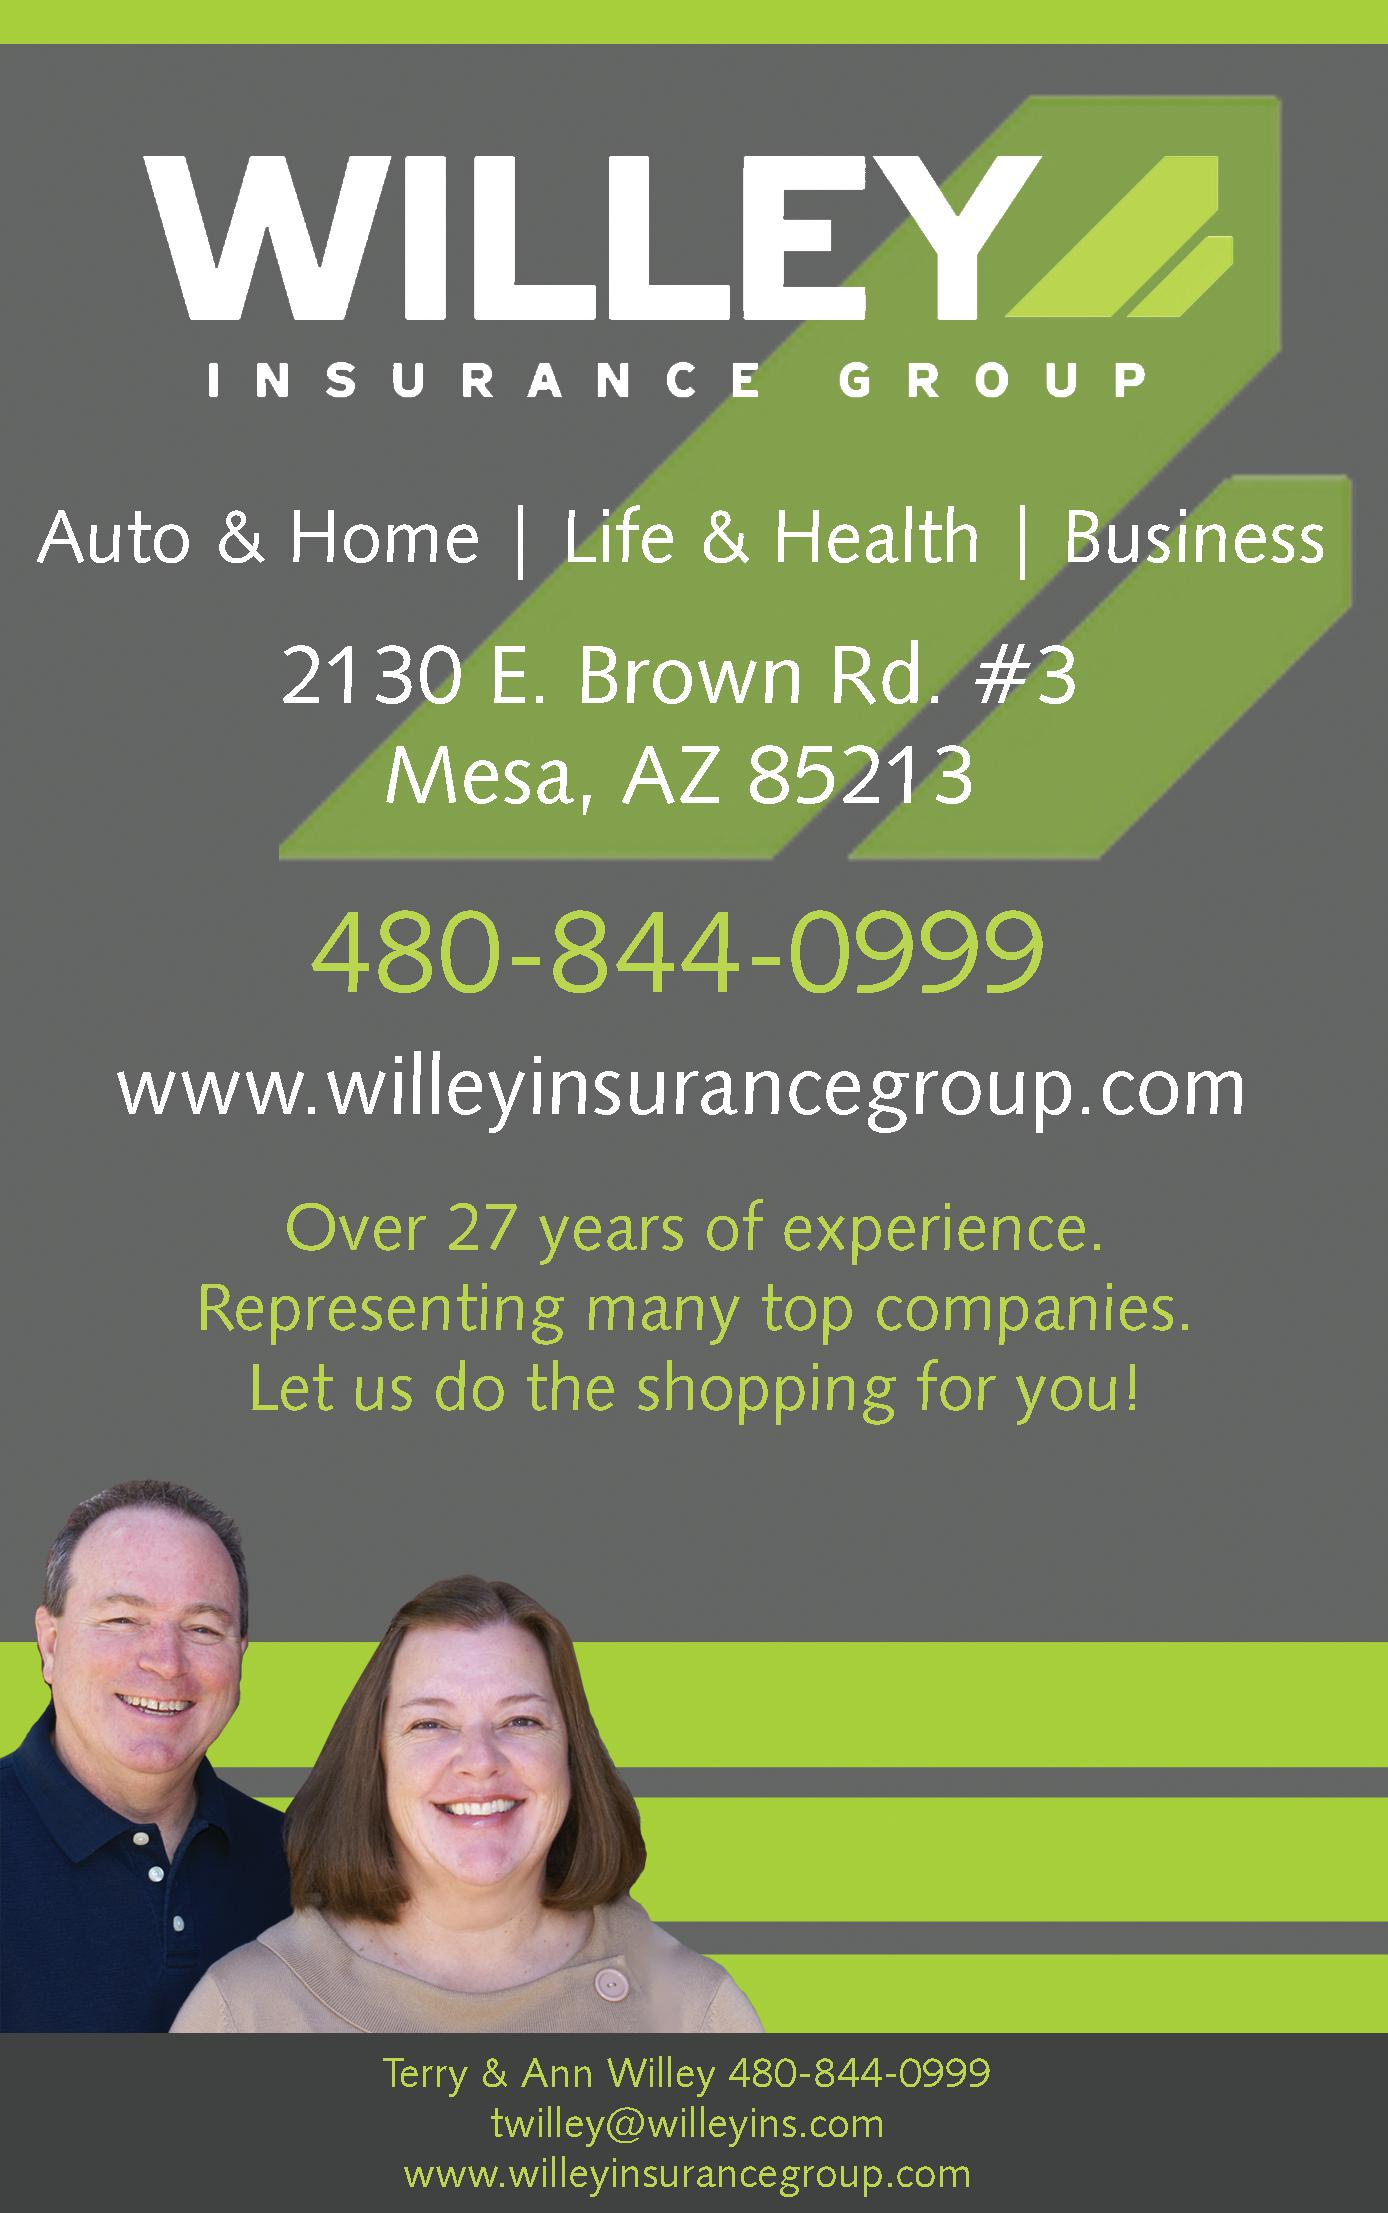 Willey Insurance Group, Inc.